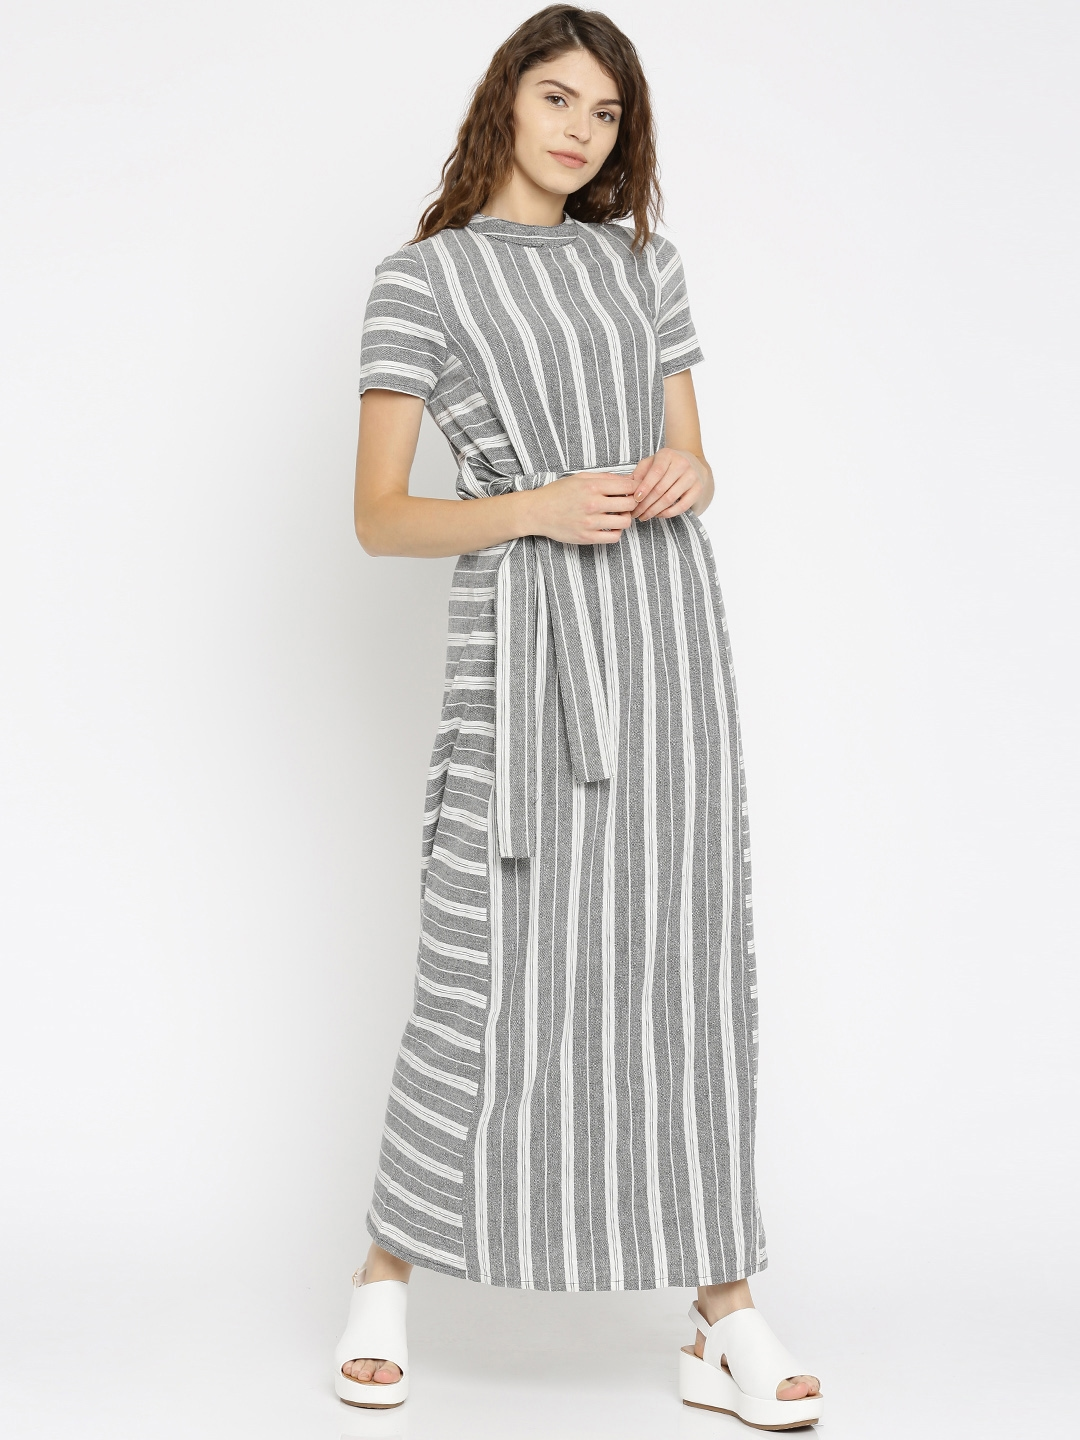 150a32310792 Buy Vero Moda Women Grey   White Self Design Maxi Dress - Dresses ...